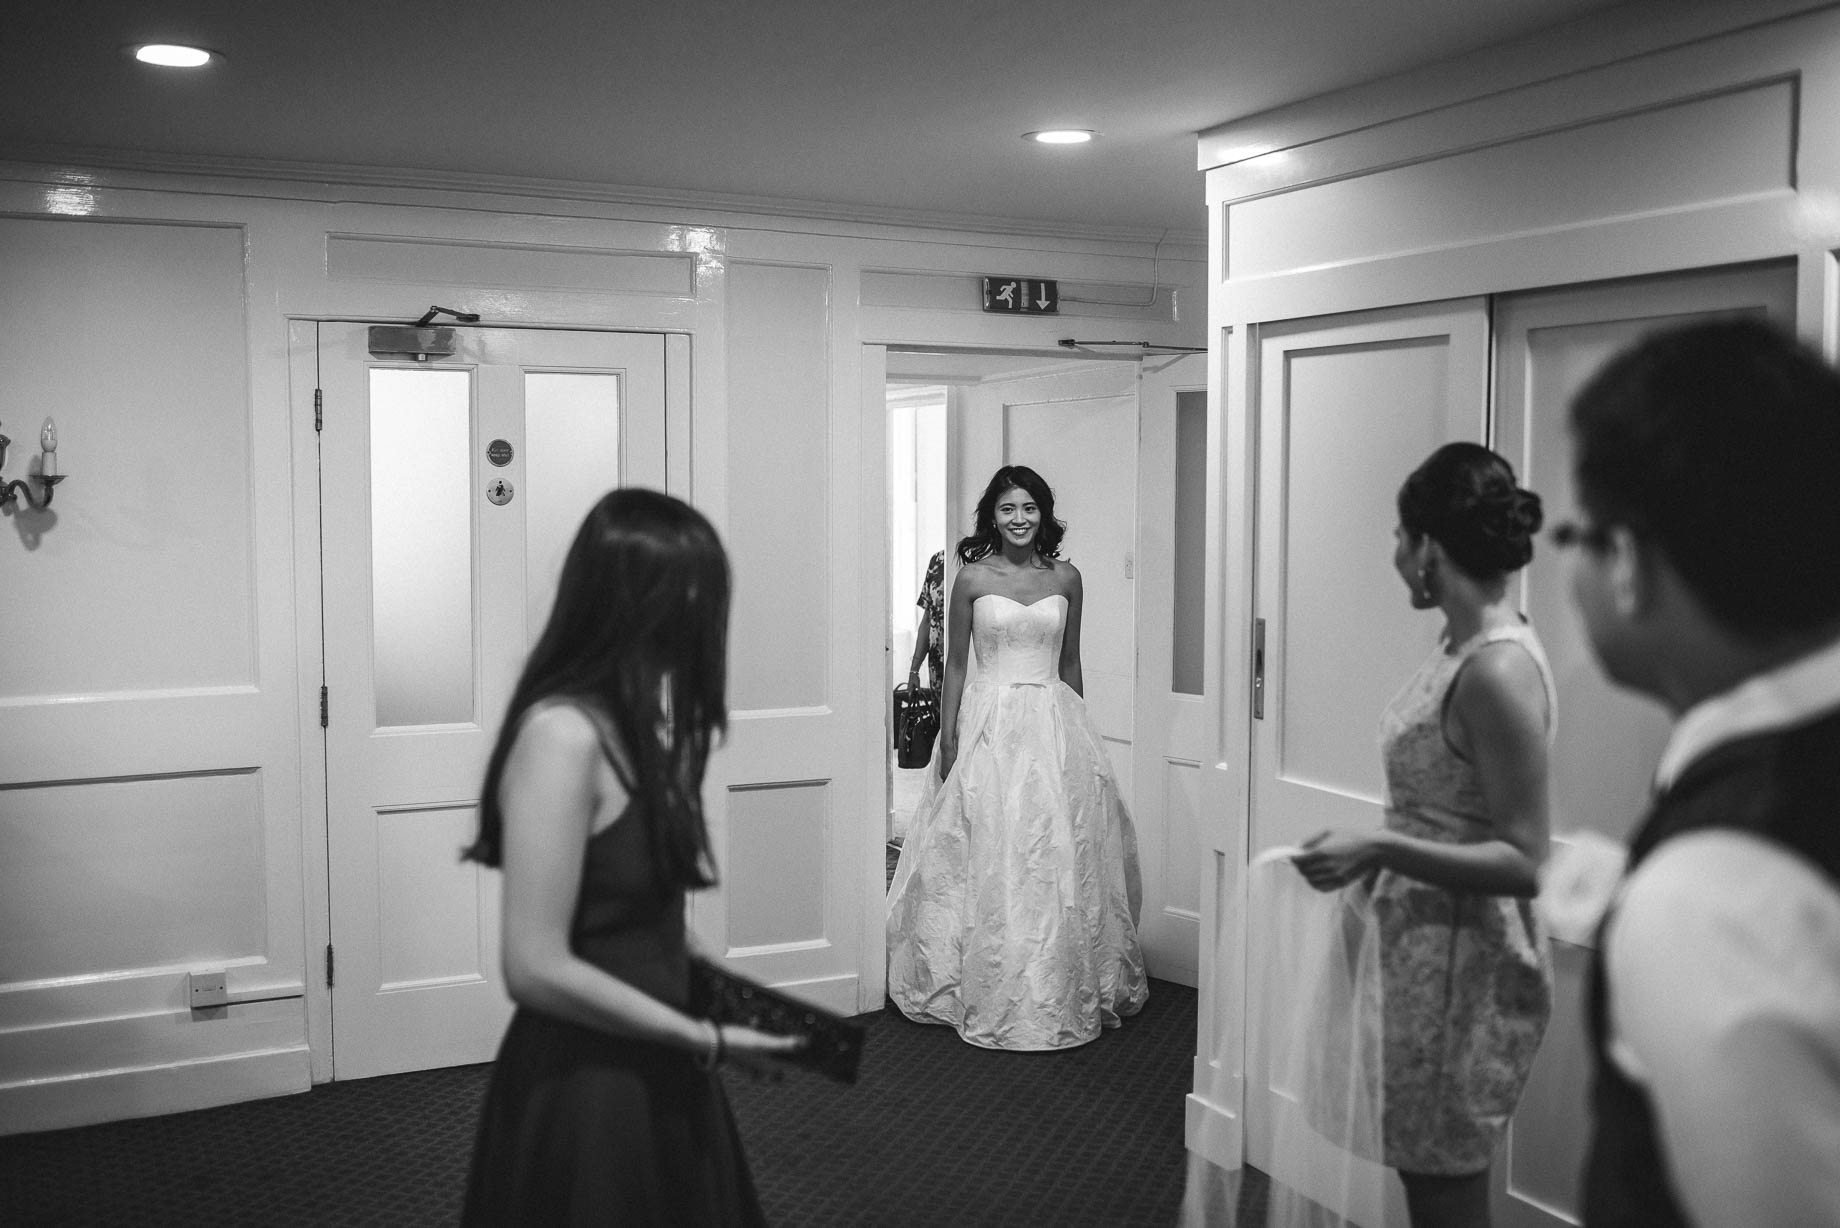 Kew Gardens wedding photography - Guy Collier Photography - Gloria and Frederik (33 of 173)